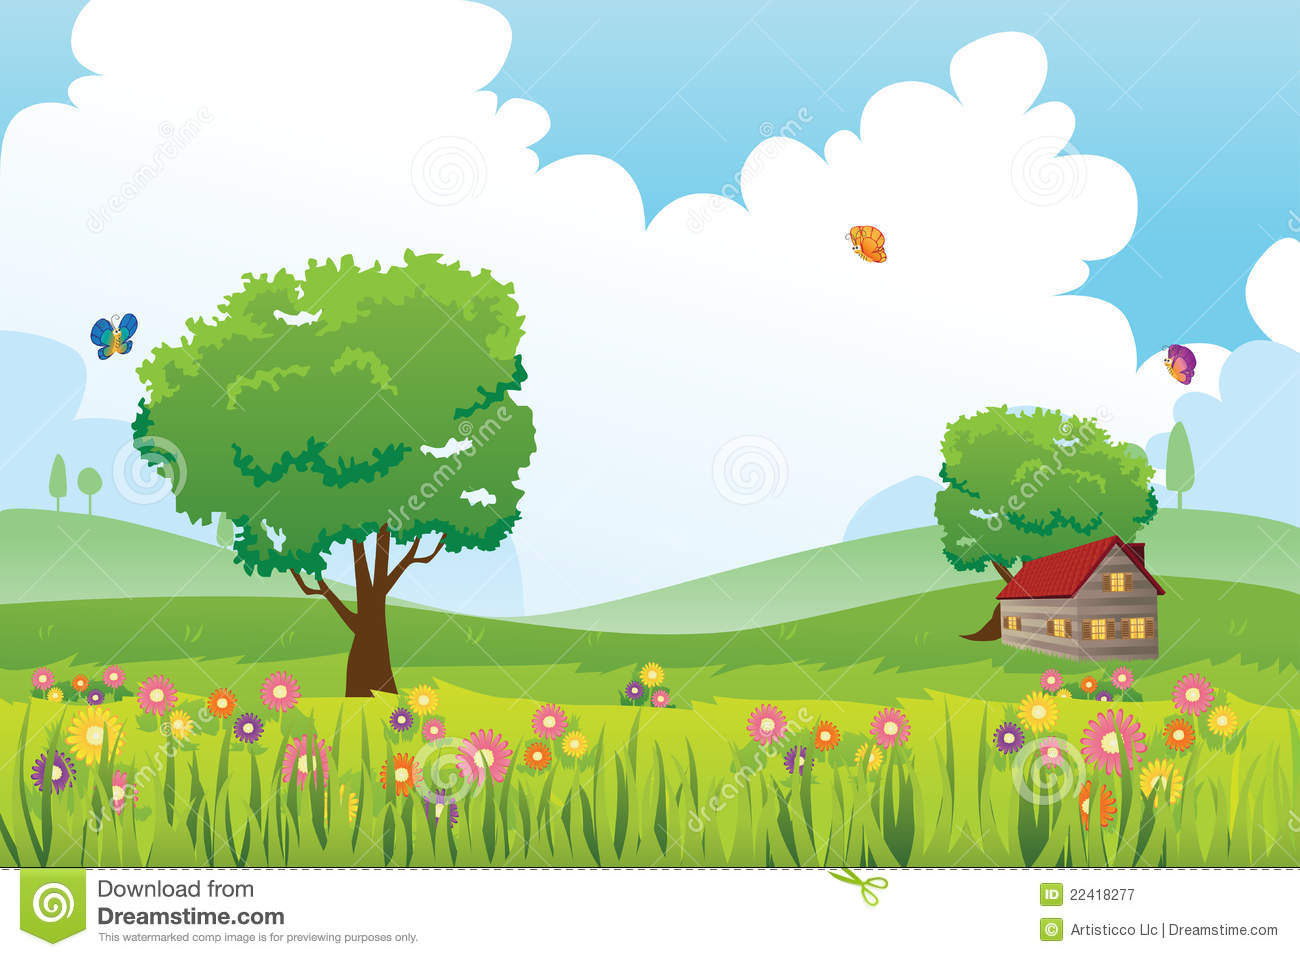 Nature cliparts vector free Nature cliparts vector free